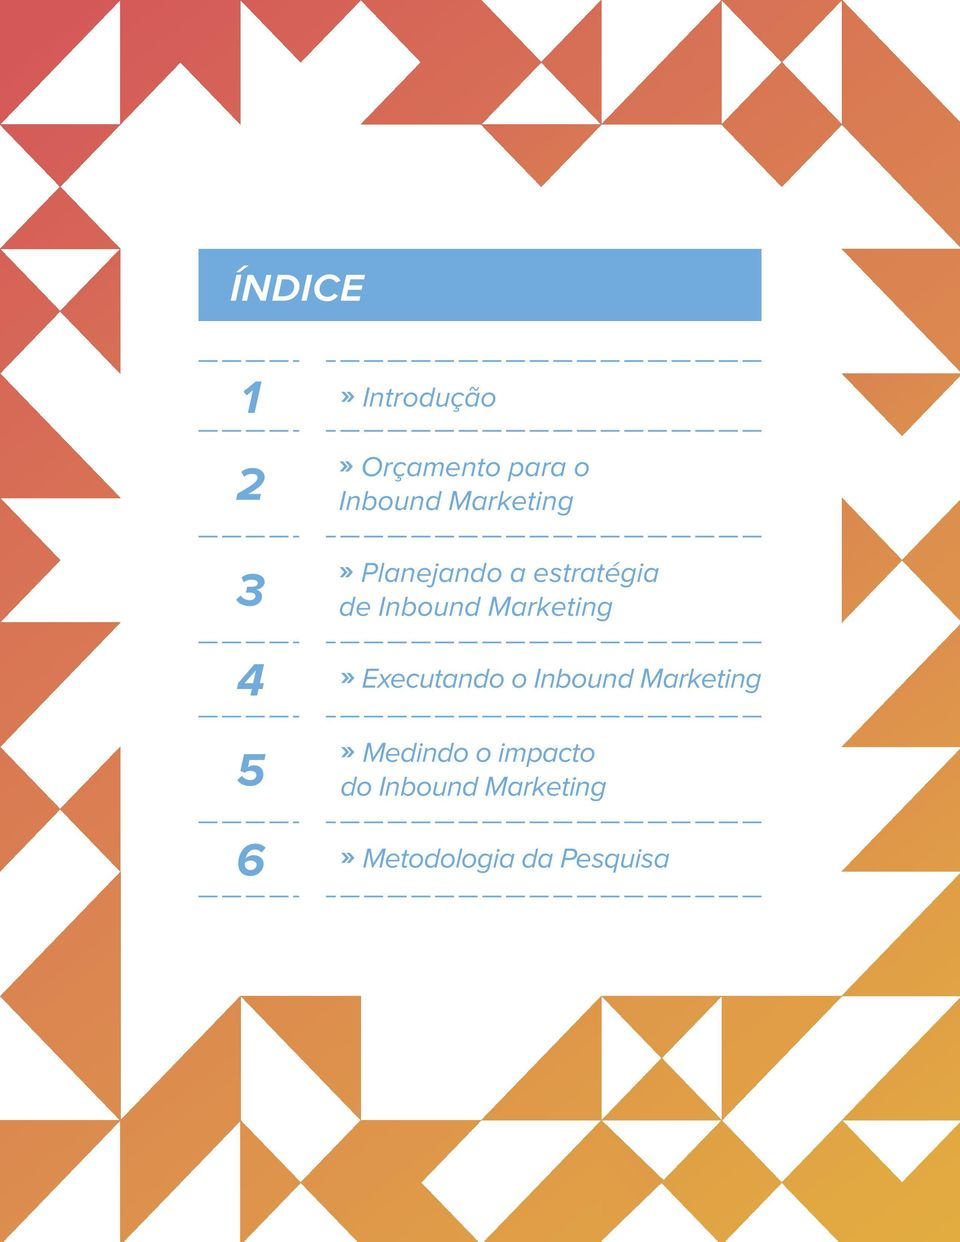 Inbound Marketing» Executando o Inbound Marketing»